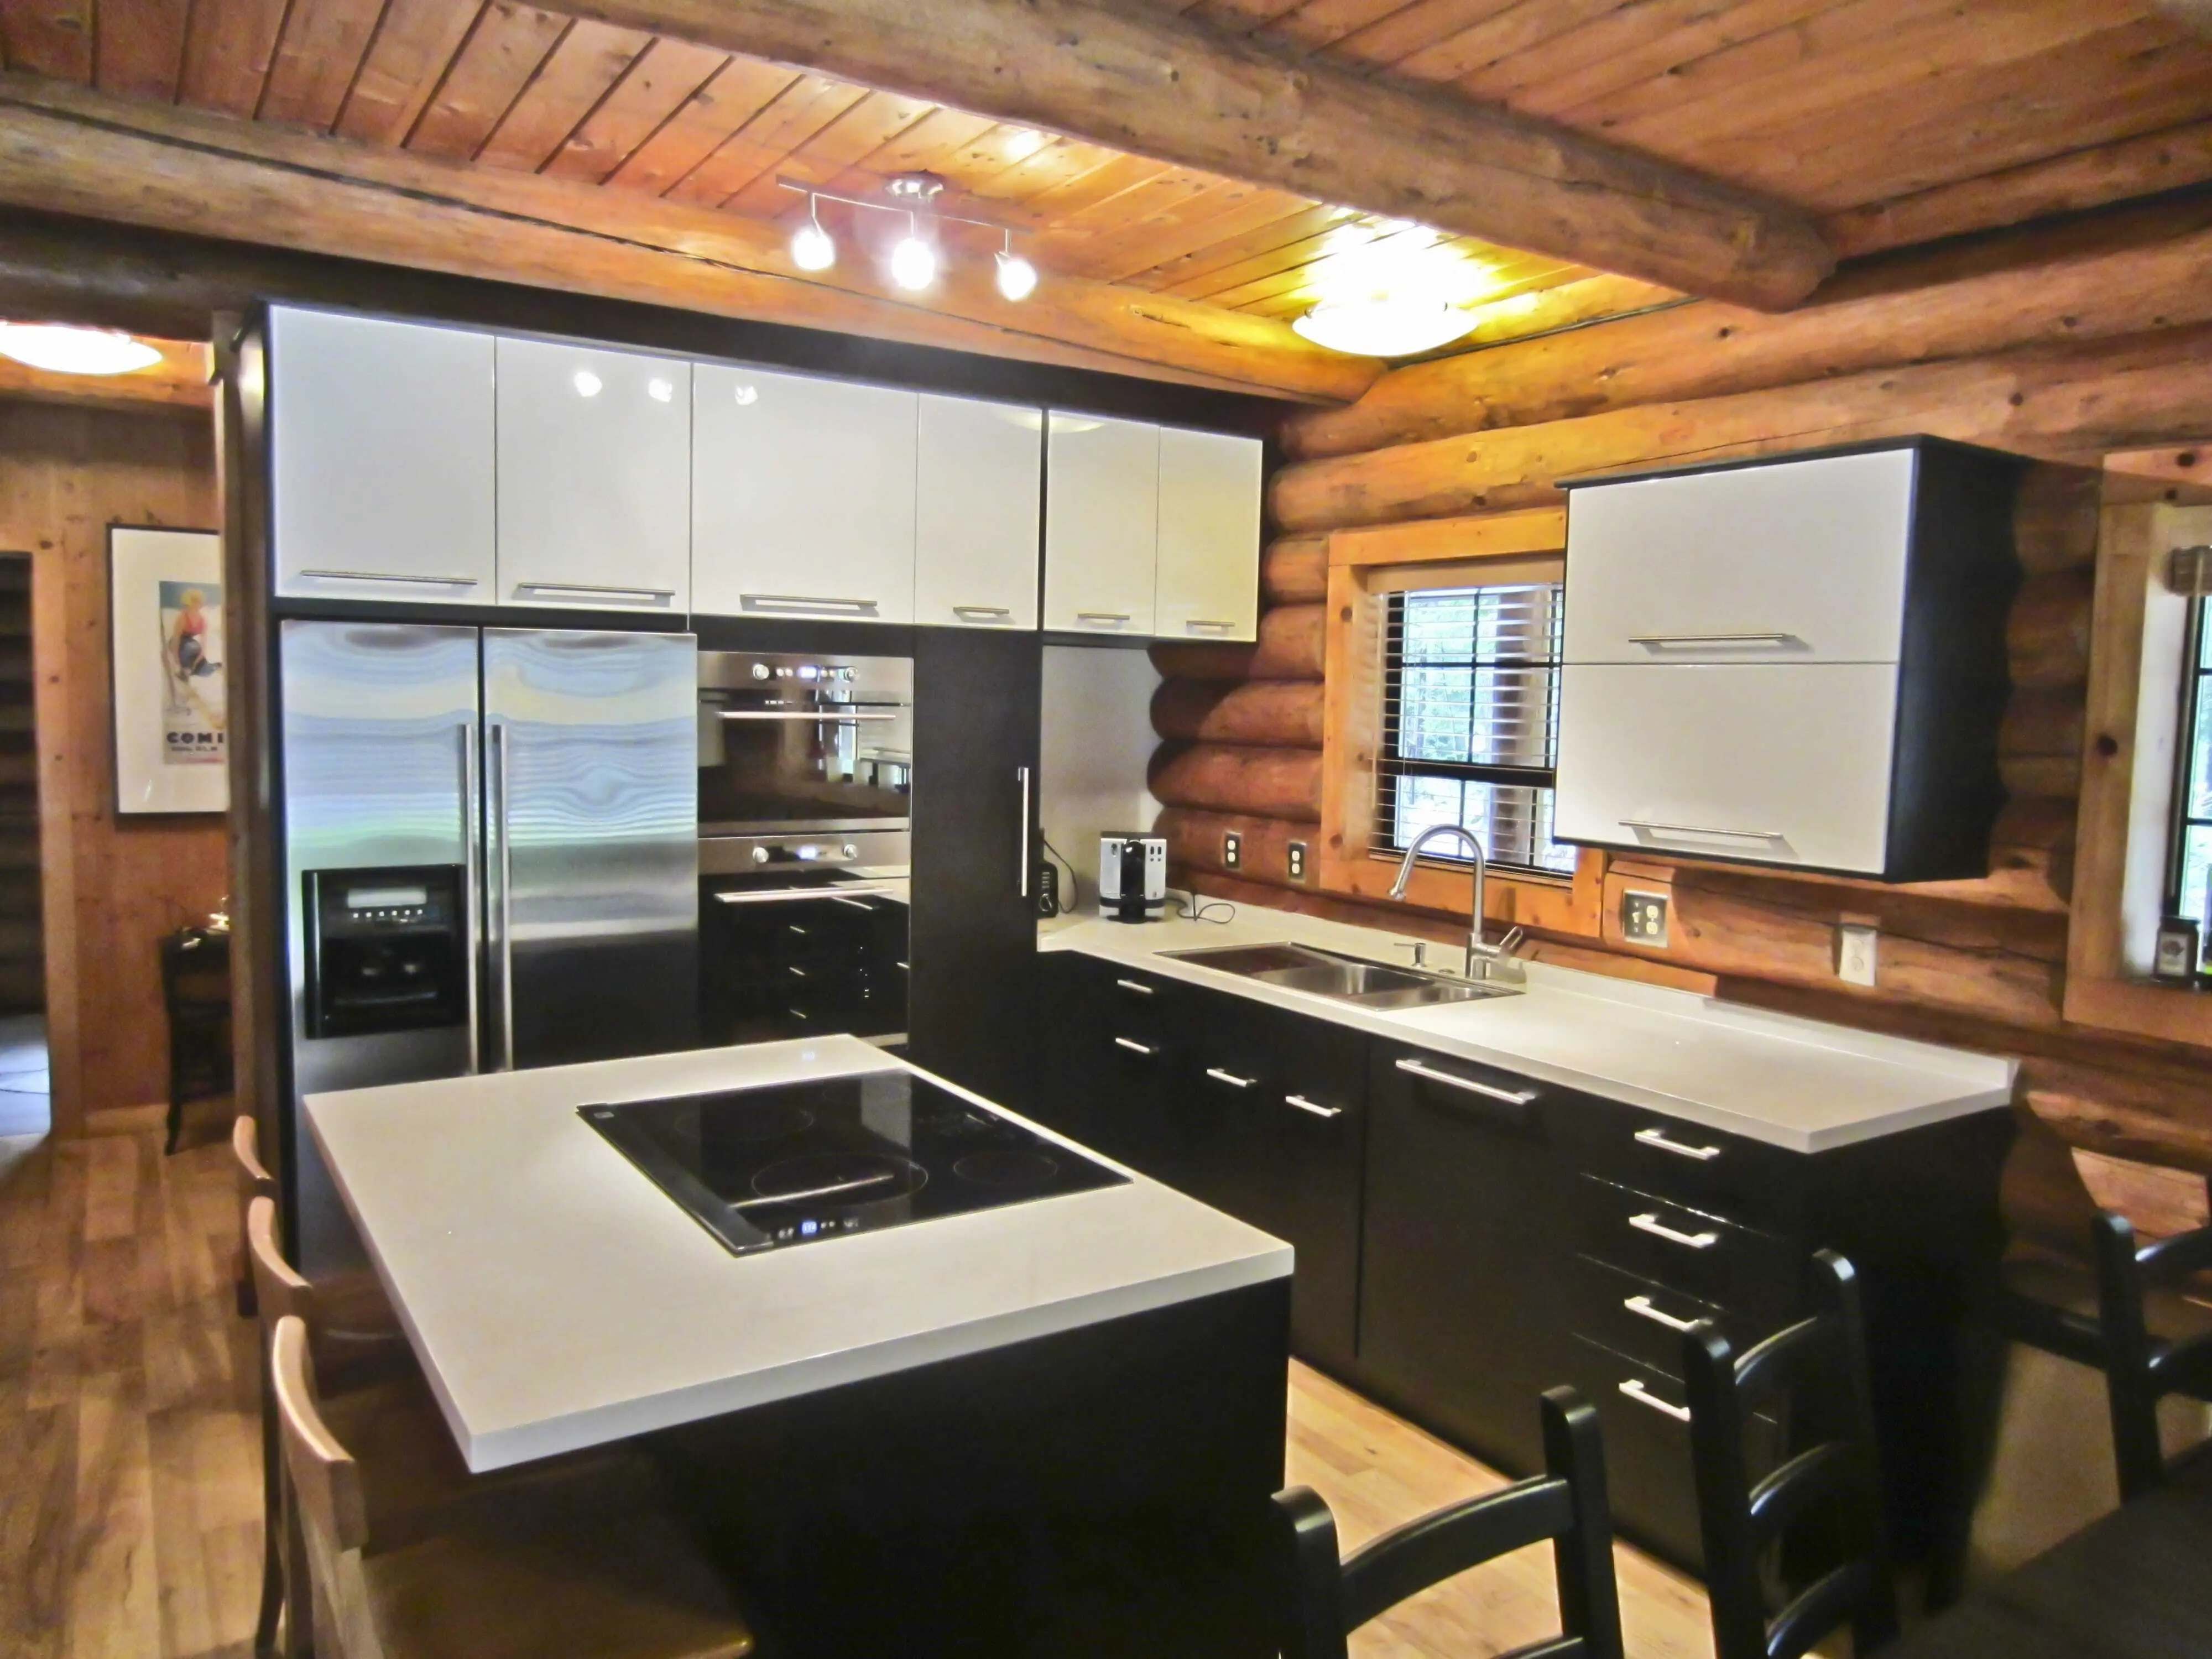 installing ikea cabinets in a log home ikea cabinets kitchen There